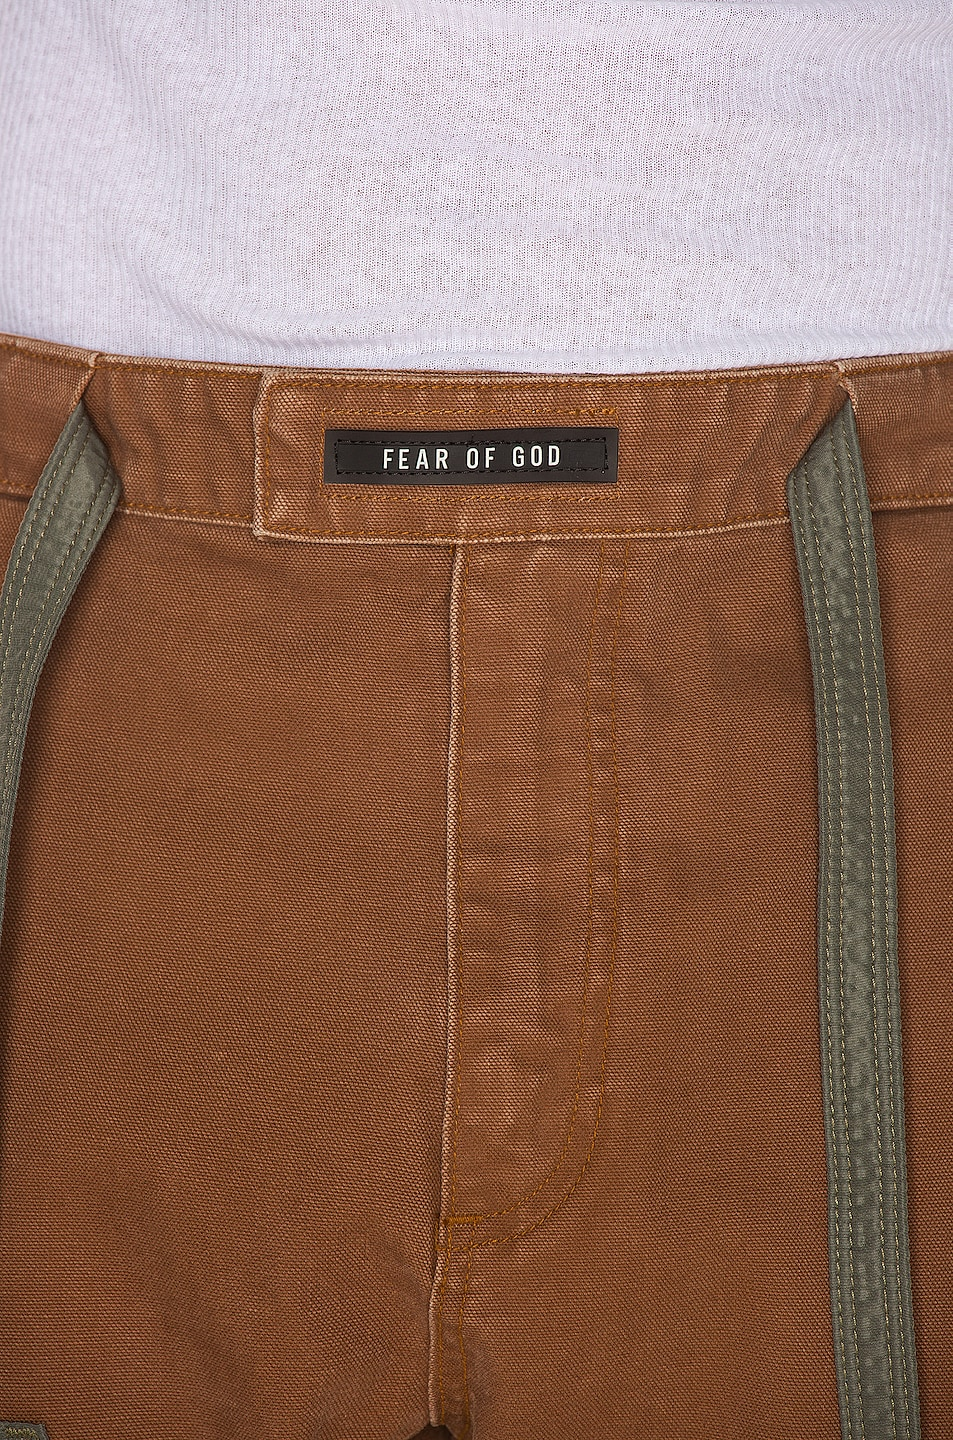 Image 5 of Fear of God Nylon Canvas Double Front Work Pant in Brick & Army Green